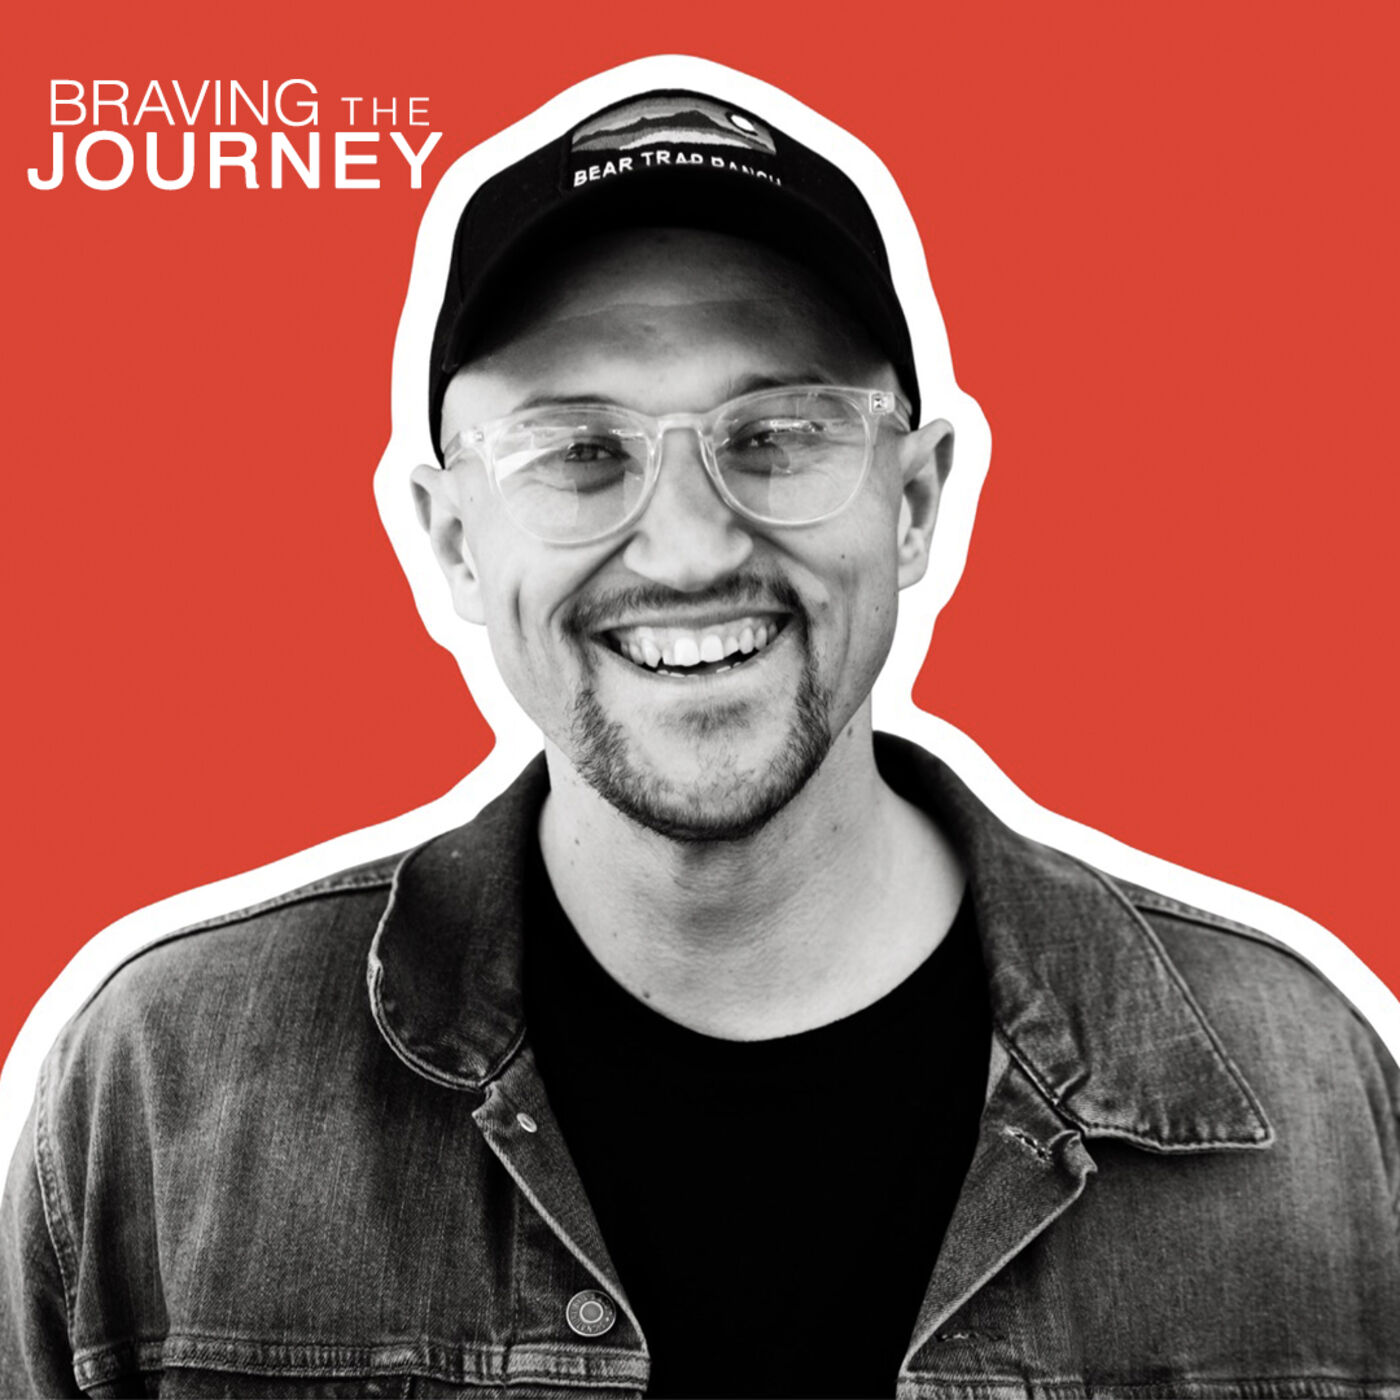 The journey of overcoming with Nate Dukes